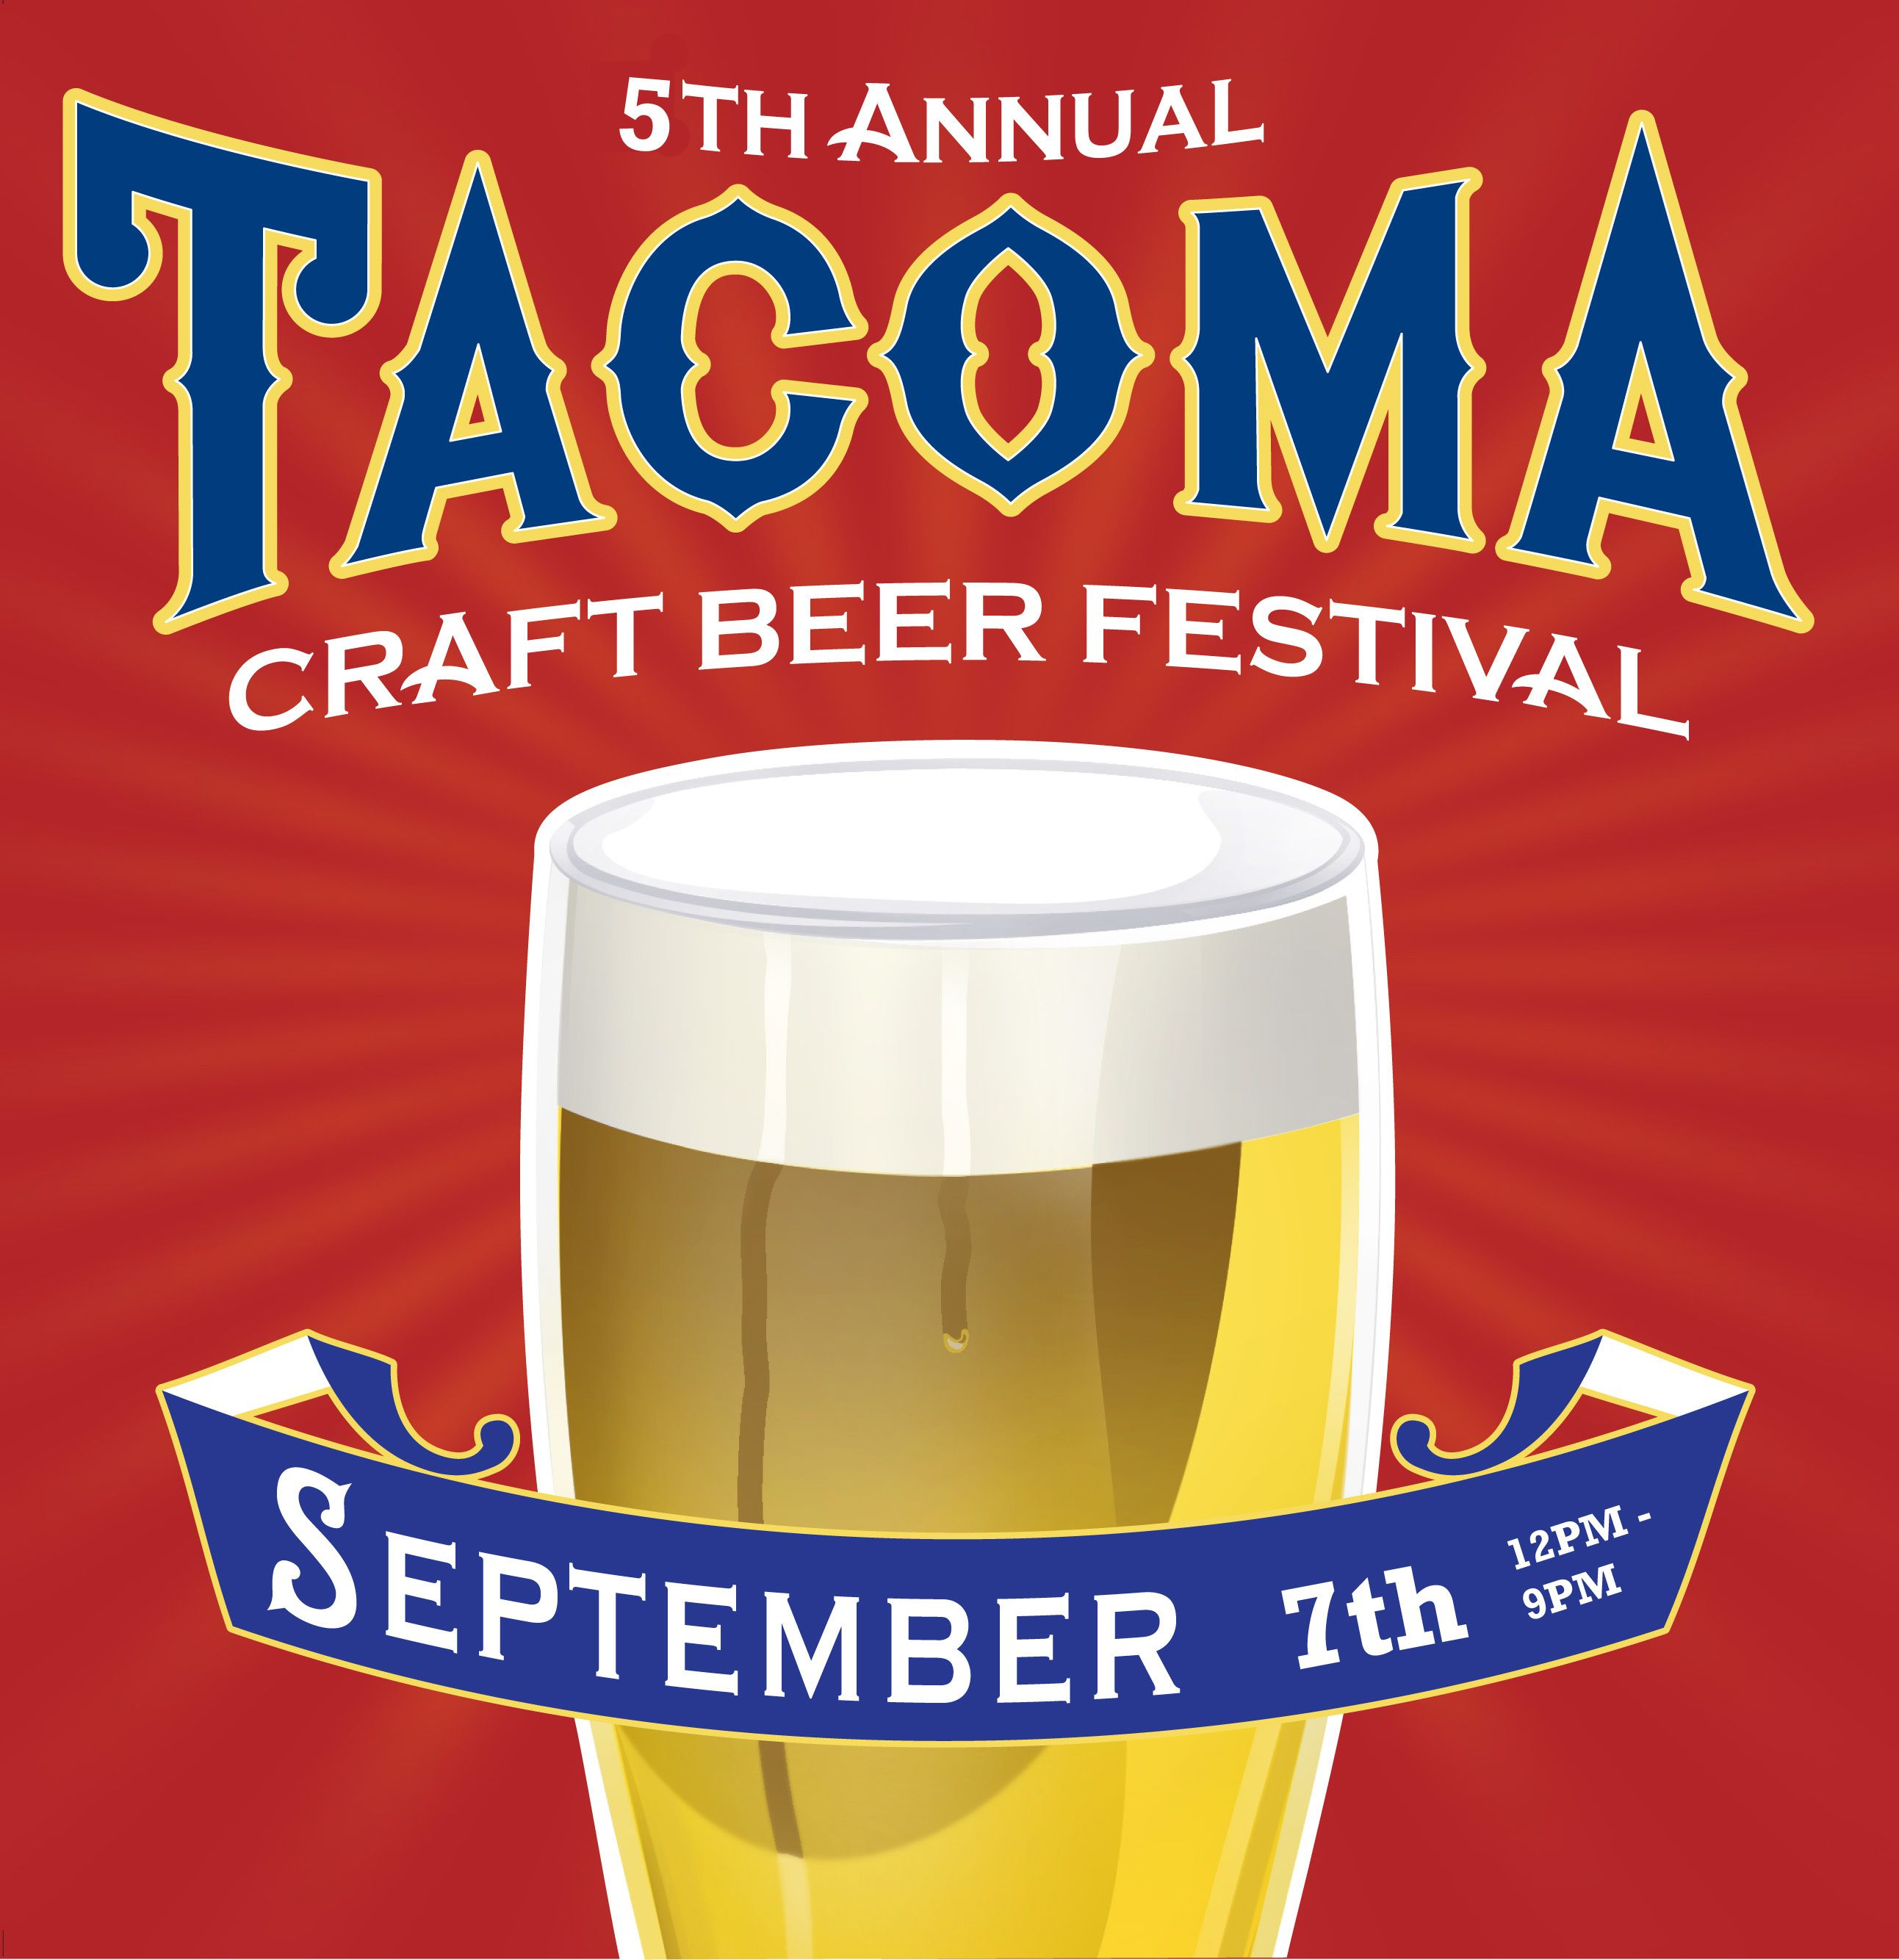 5th Annual Tacoma Craft Beer Festival I Can T Wait Craft Beer Festival Beer Festival Craft Beer